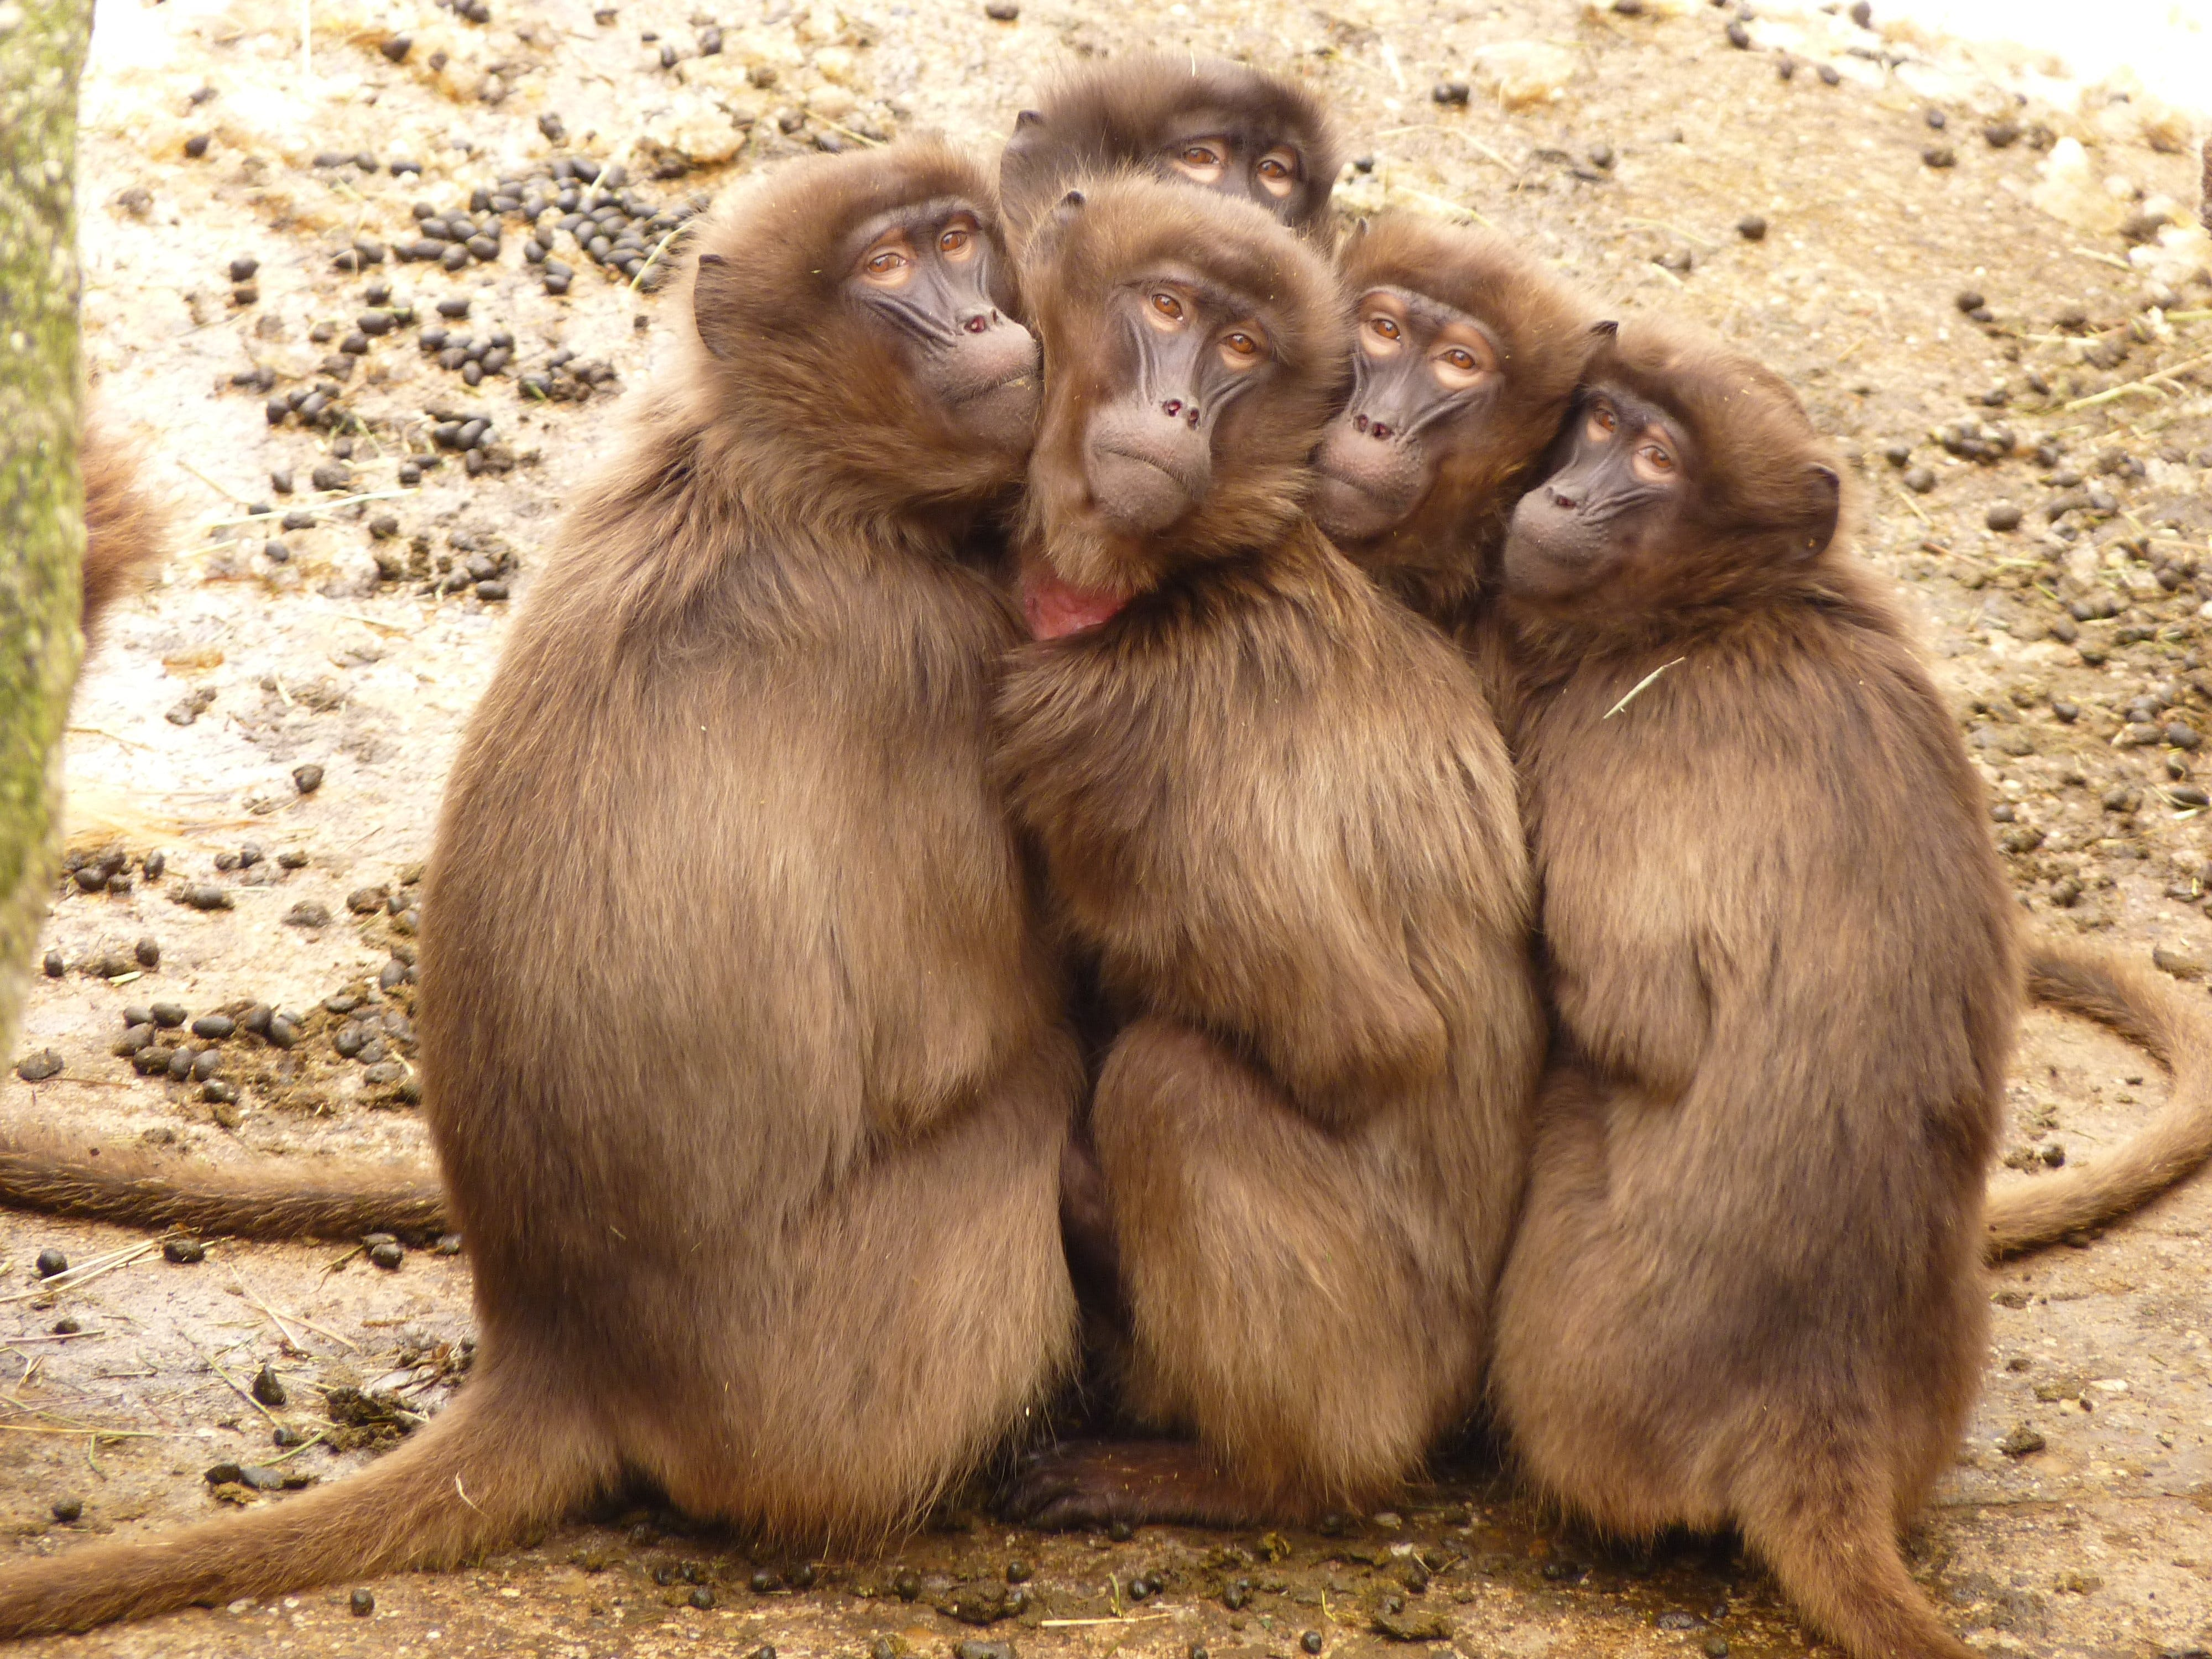 Five Monkey Huddled Together Outdoor during Daytime